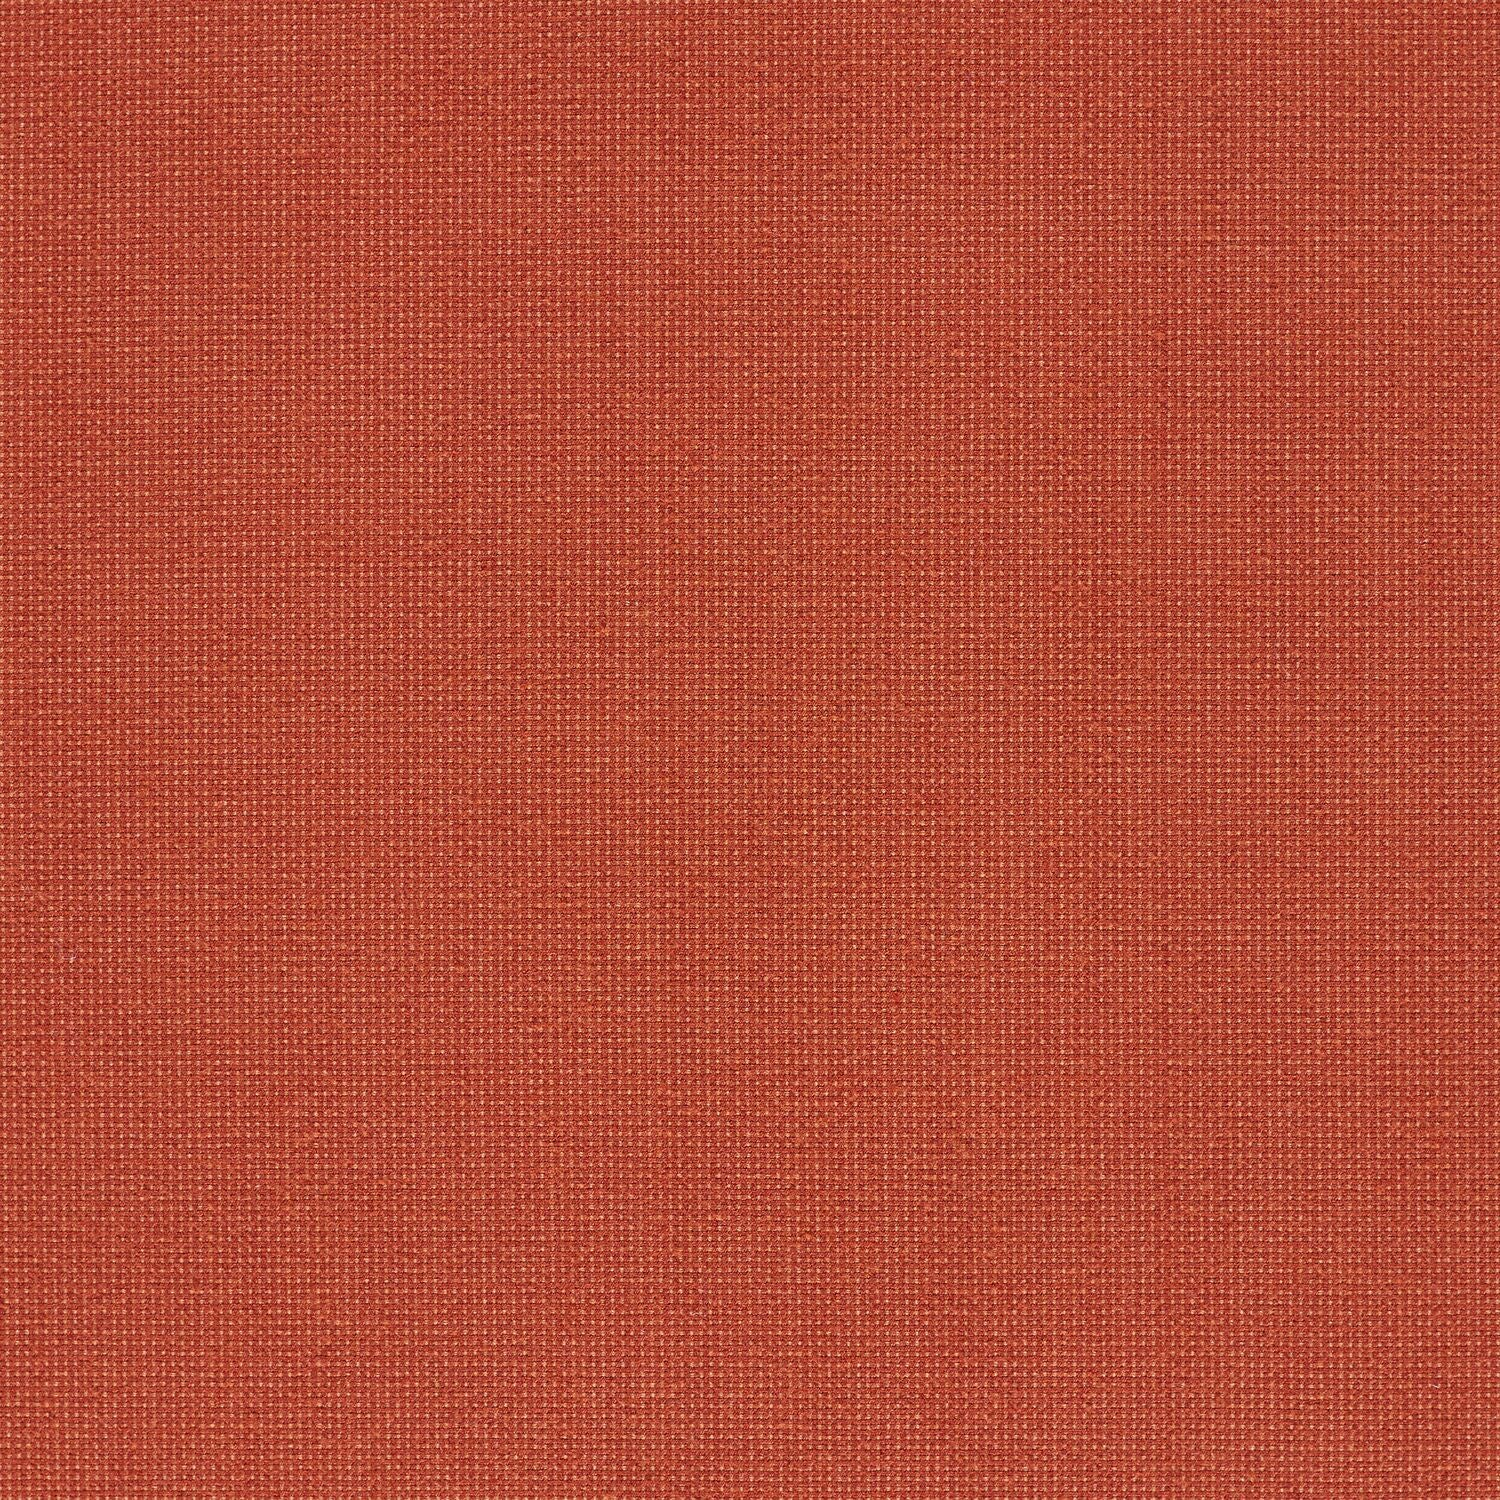 Elastic Wool - Rust - 4067 - 07